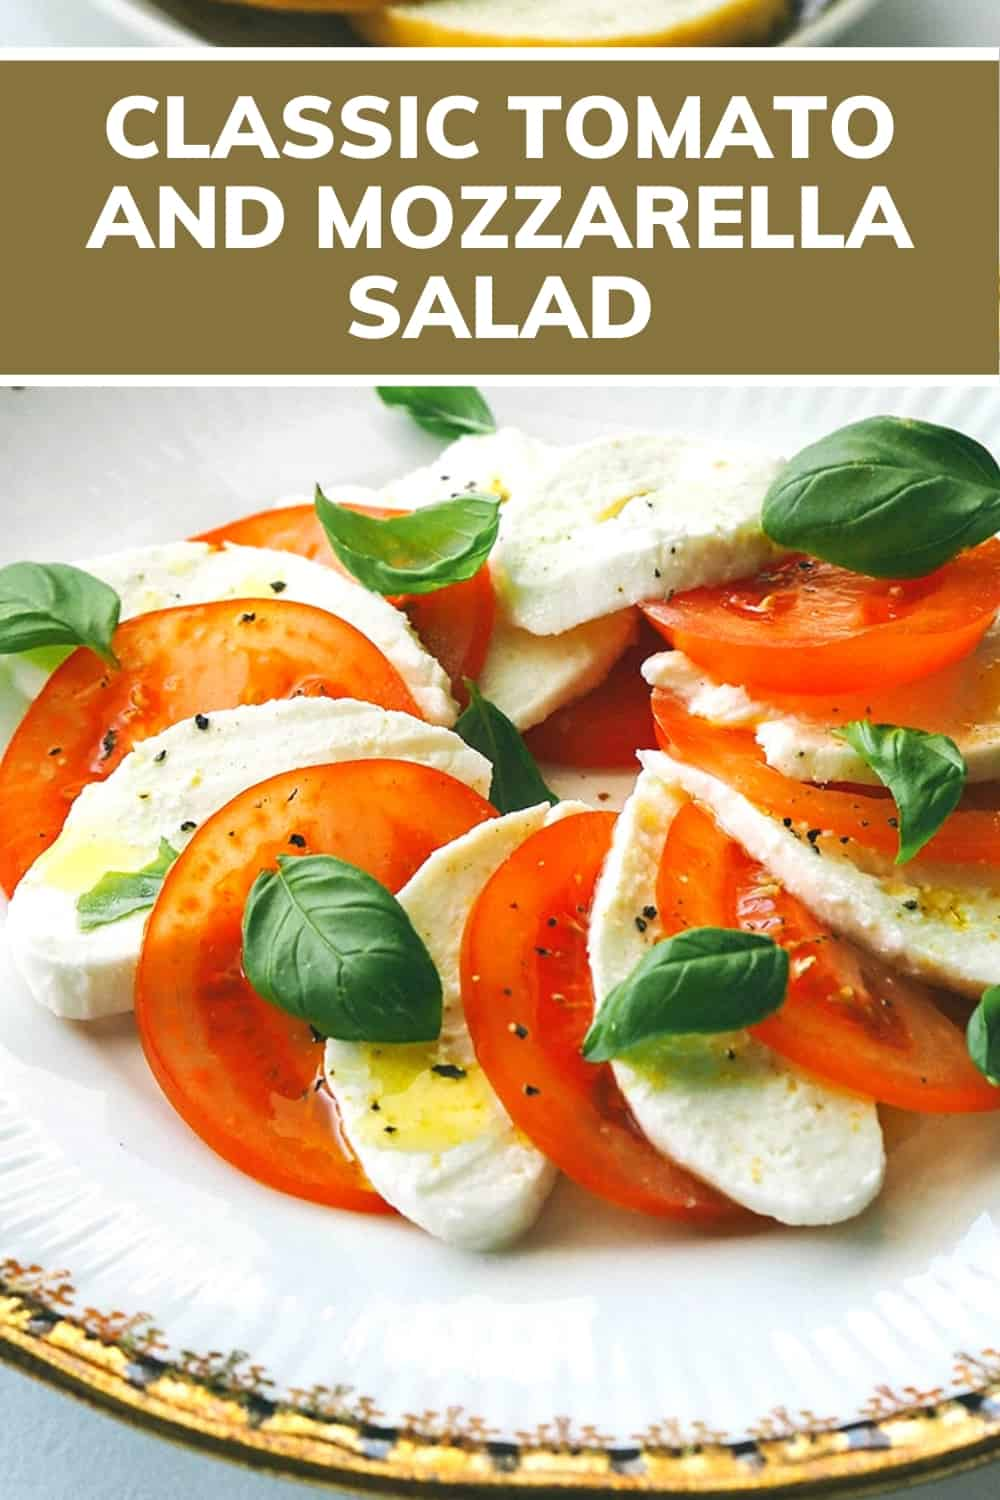 Caprese Salad | tomatoe salad recipes, mozzarella recipe healthy, mozzarella recipes, tomatoes salad, recipes with mozzarella, recipes with mozzarella cheese, mozzarella recipe ideas, mozzarella cheese recipe, capree salad, mozzarella and tomato, mozzarella tomato, recipes with fresh mozzarella, tomato and mozzarella salad, tomatoes and mozzarella appetizer, mozzarella capreses, mozzarella appetizers #apetizerrecipe #salad #easyrecipe #singleserving #recipeforone #foodrecipes #onedishkitchen